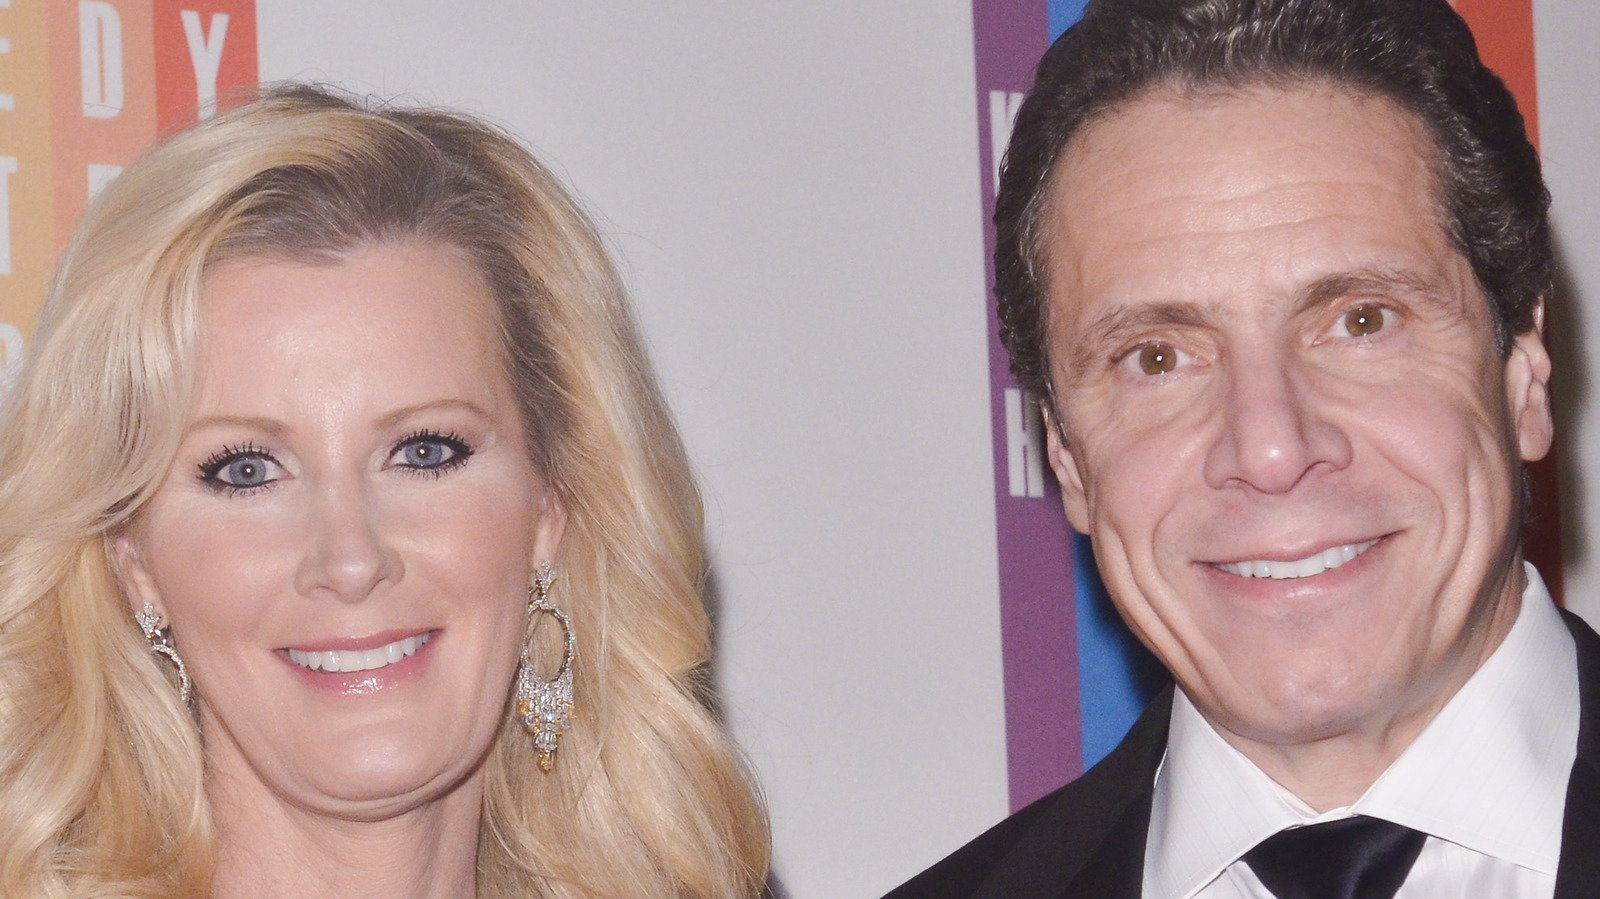 The Truth About Andrew Cuomo And Kerry Kennedy's Marriage